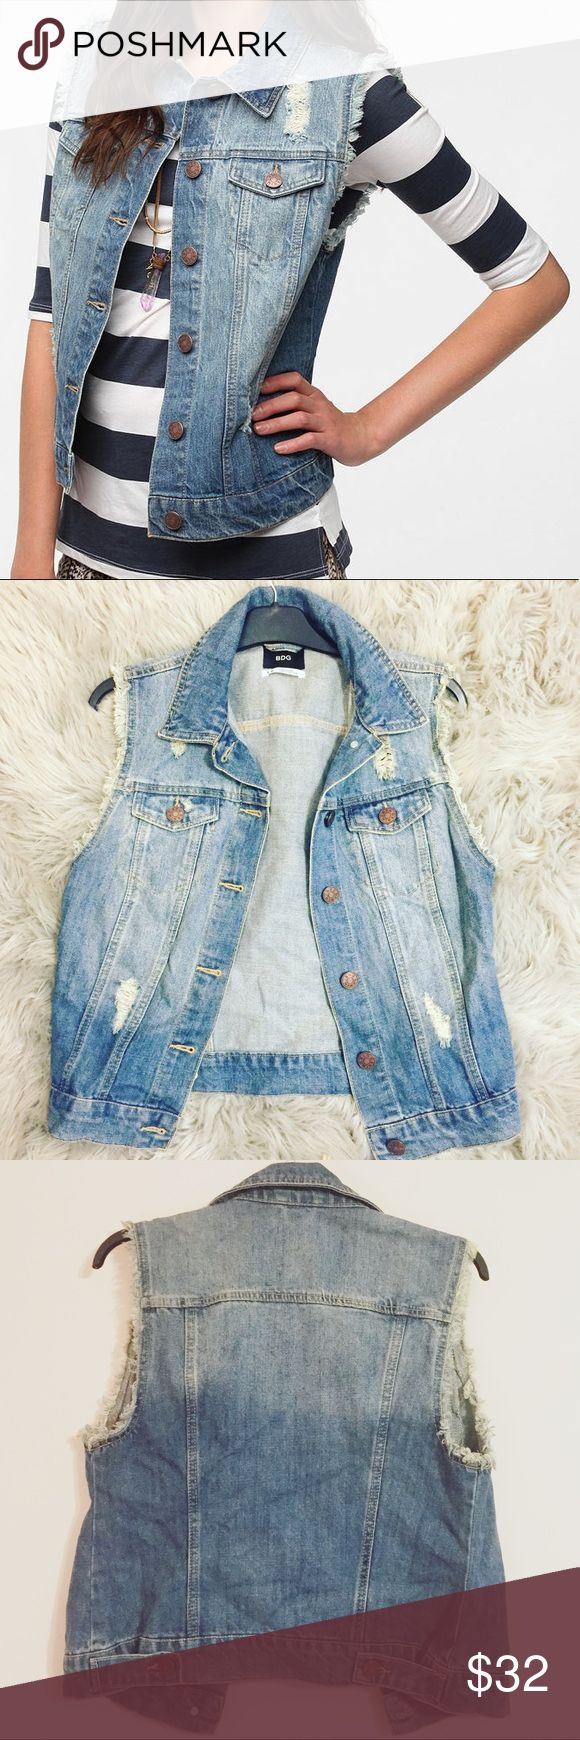 Urban Outfitters Jean Vest Jacket Jean jacket best from urban Outfitters. Perfect condition! Urban Outfitters Jackets & Coats Jean Jackets